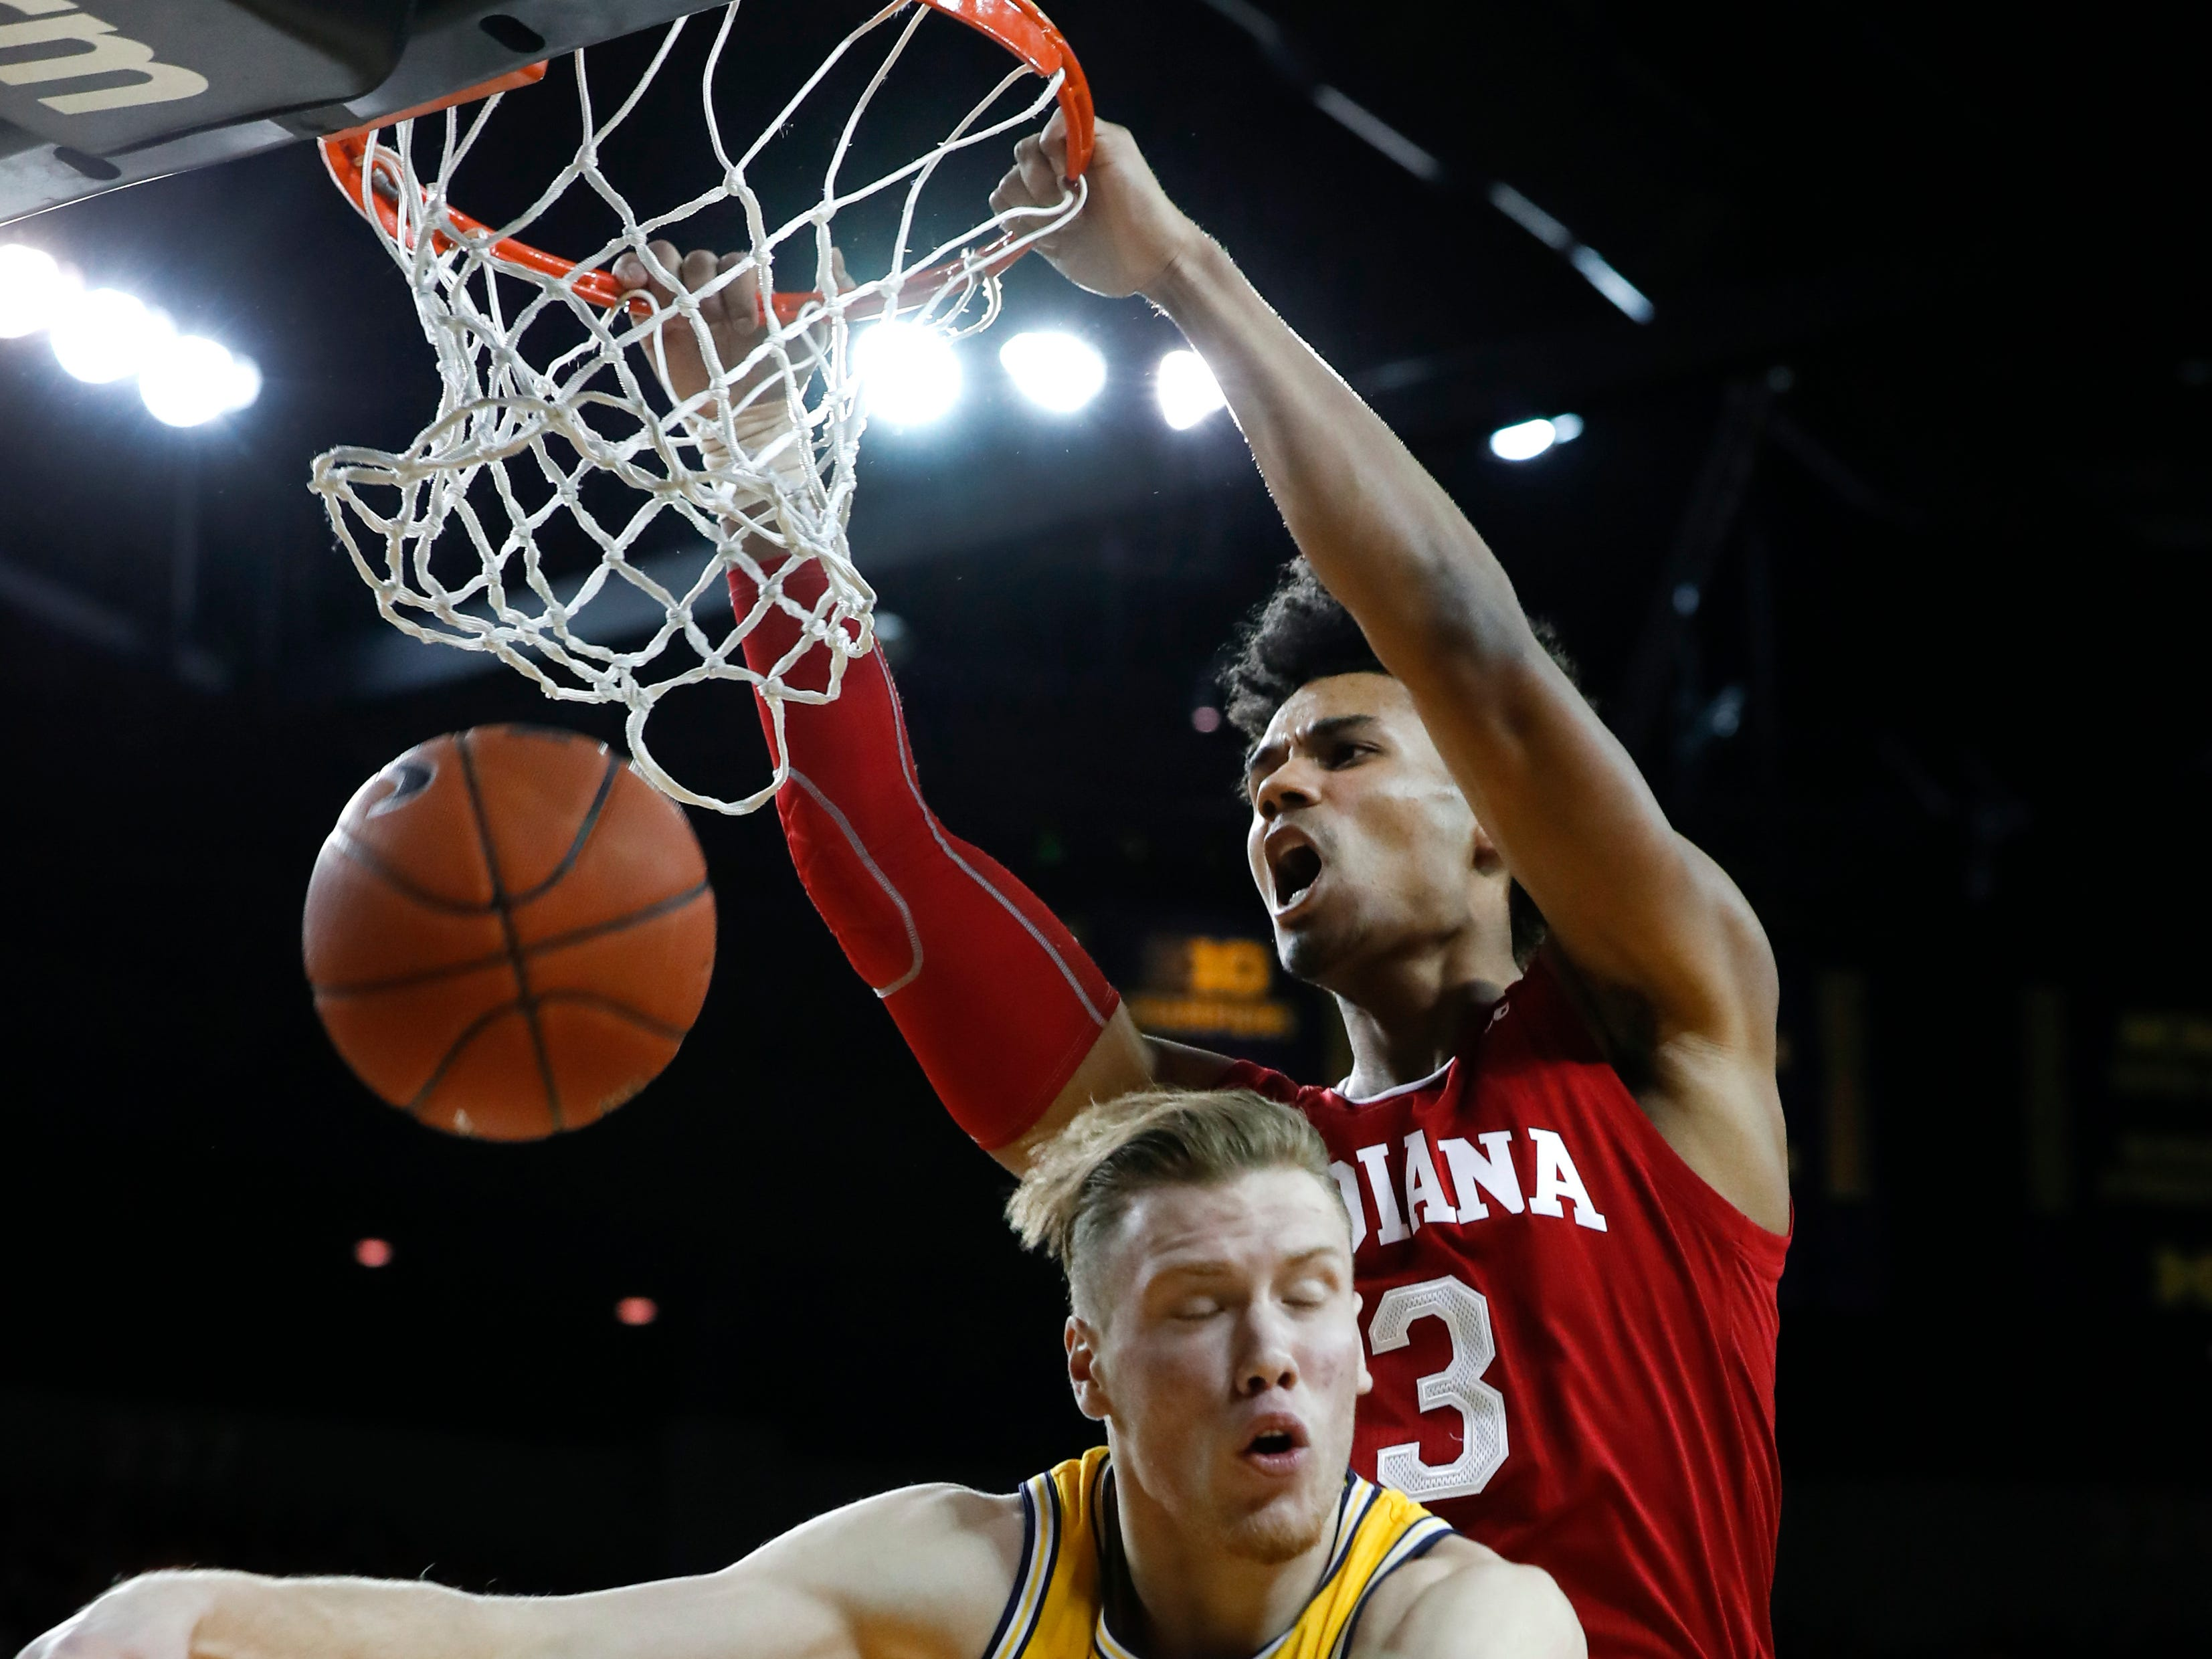 Indiana forward Justin Smith (3) dunks on Michigan forward Ignas Brazdeikis (13) in the first half of an NCAA college basketball game in Ann Arbor, Mich., Sunday, Jan. 6, 2019.